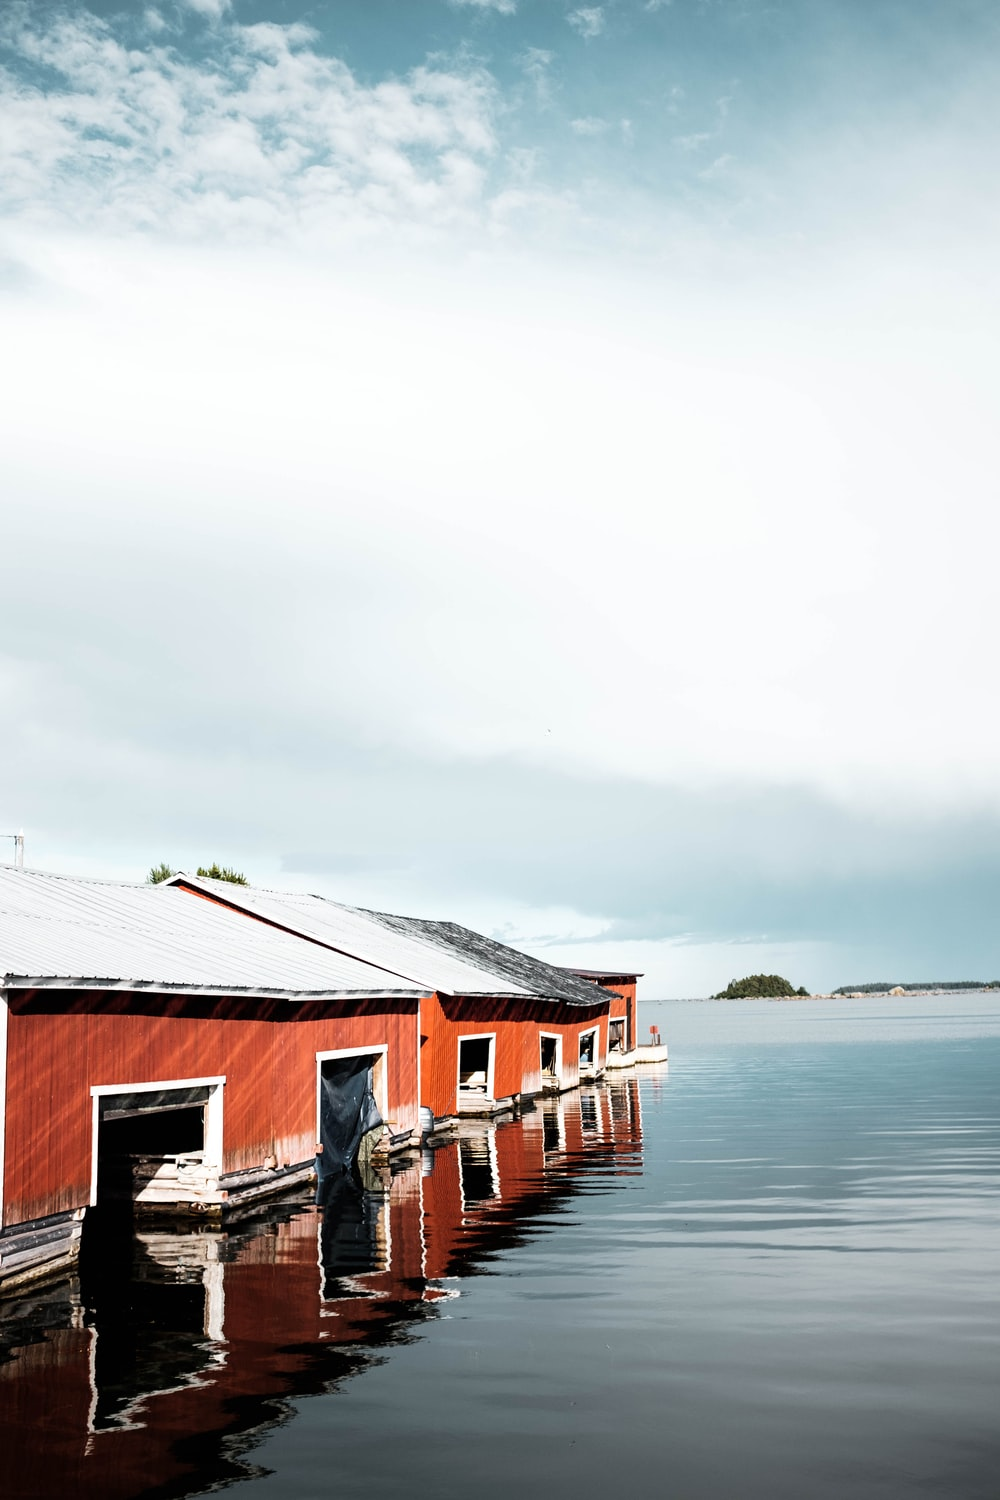 brown houses surrounded by body of water during daytime